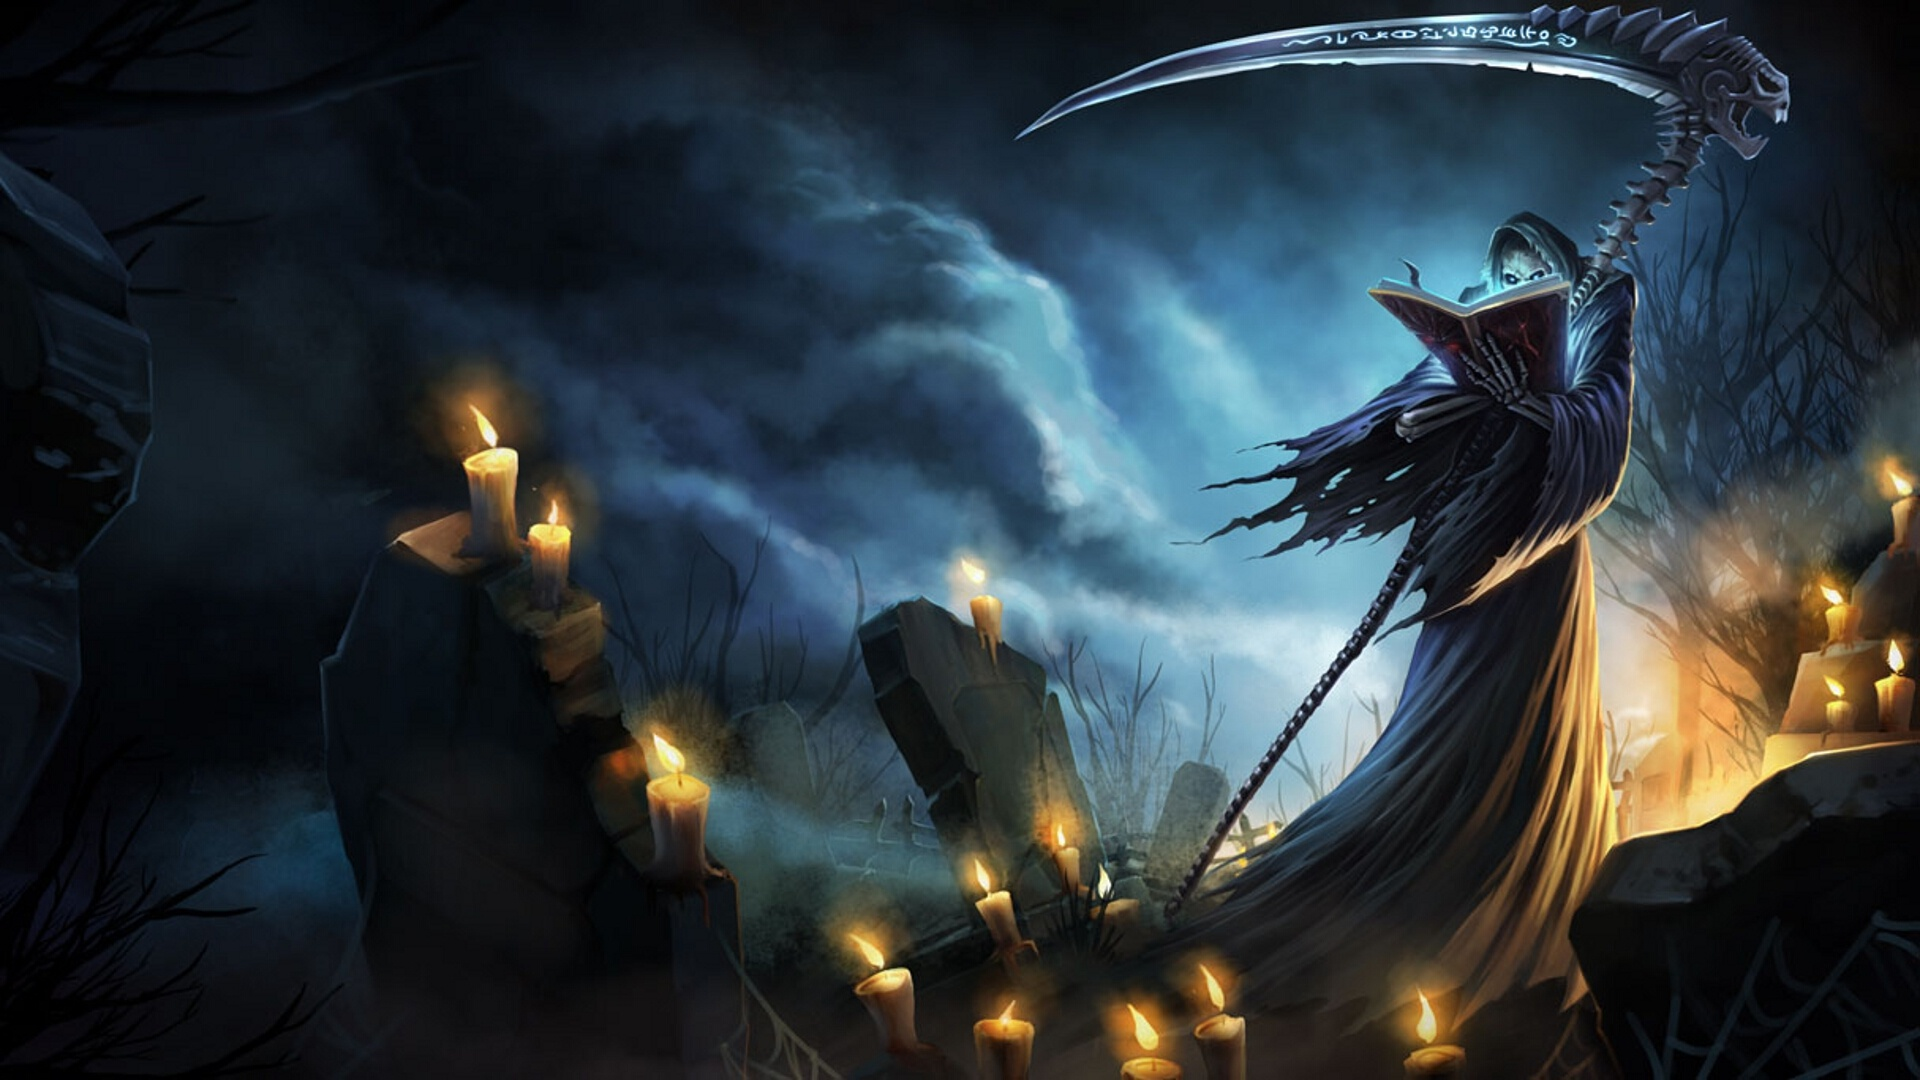 League of legends karthus 1920 x 1080 download close